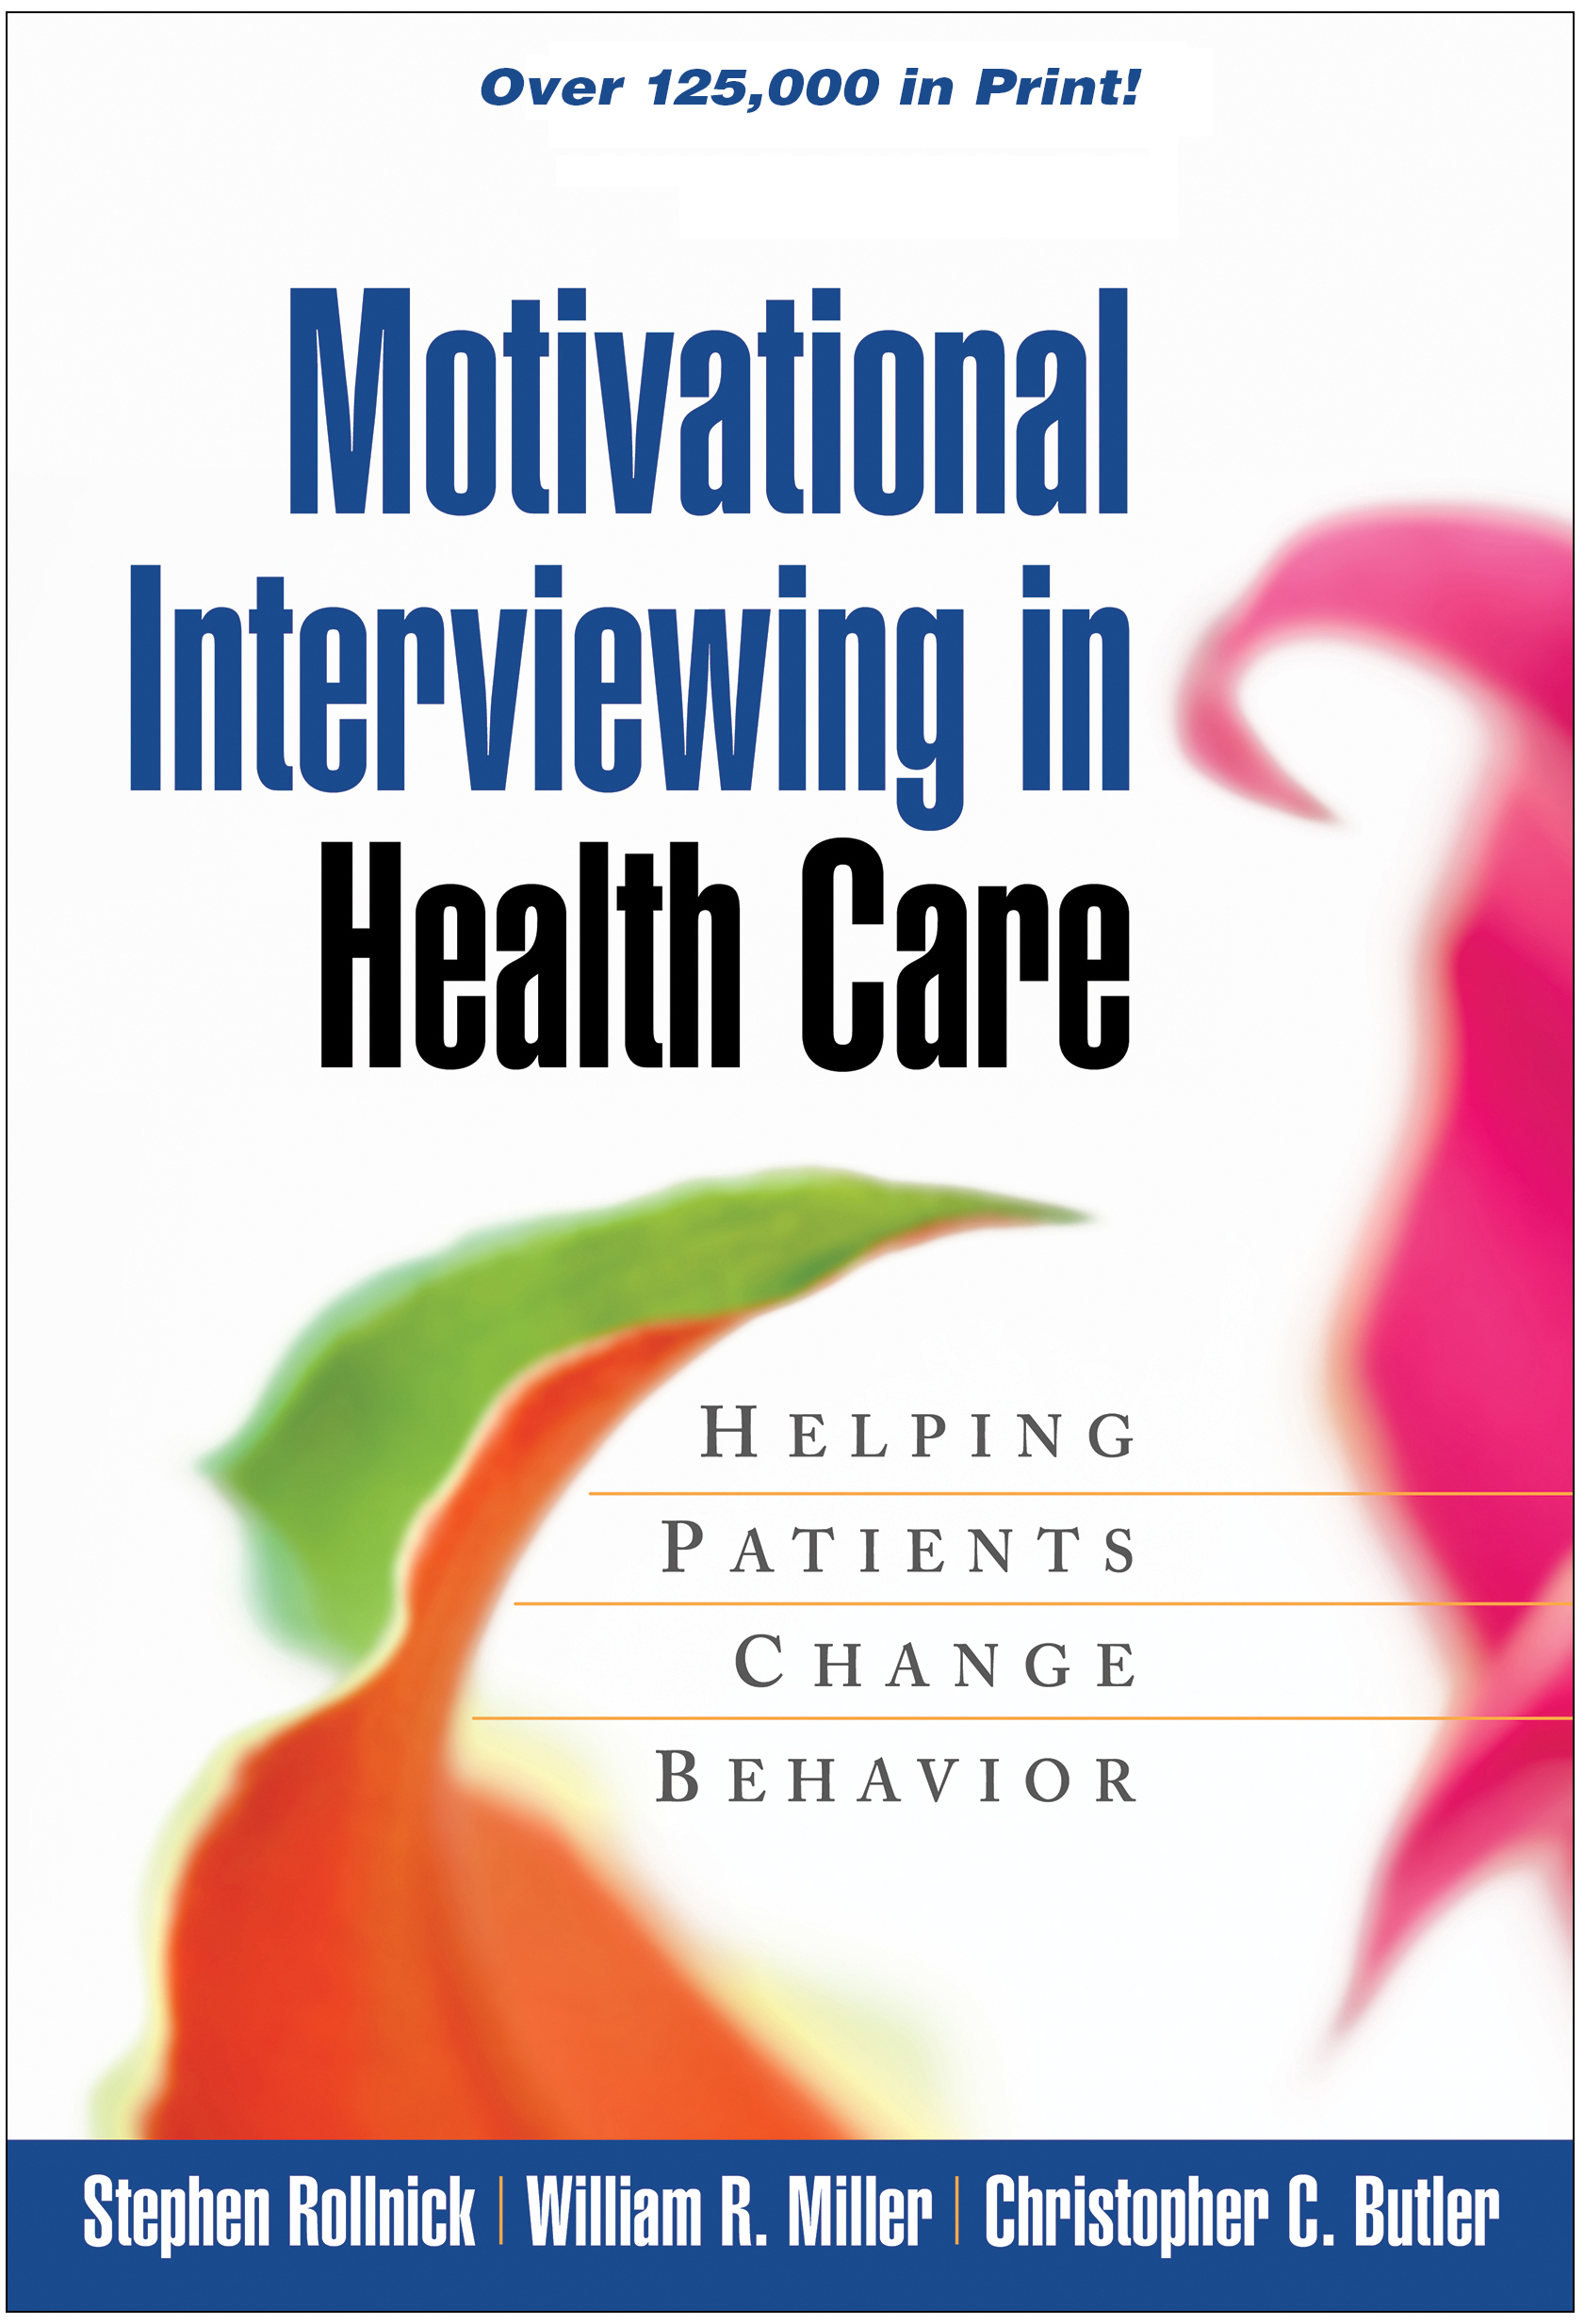 Motivational Interviewing in Health Care: Helping Patients Change Behavior (Paperback) book cover